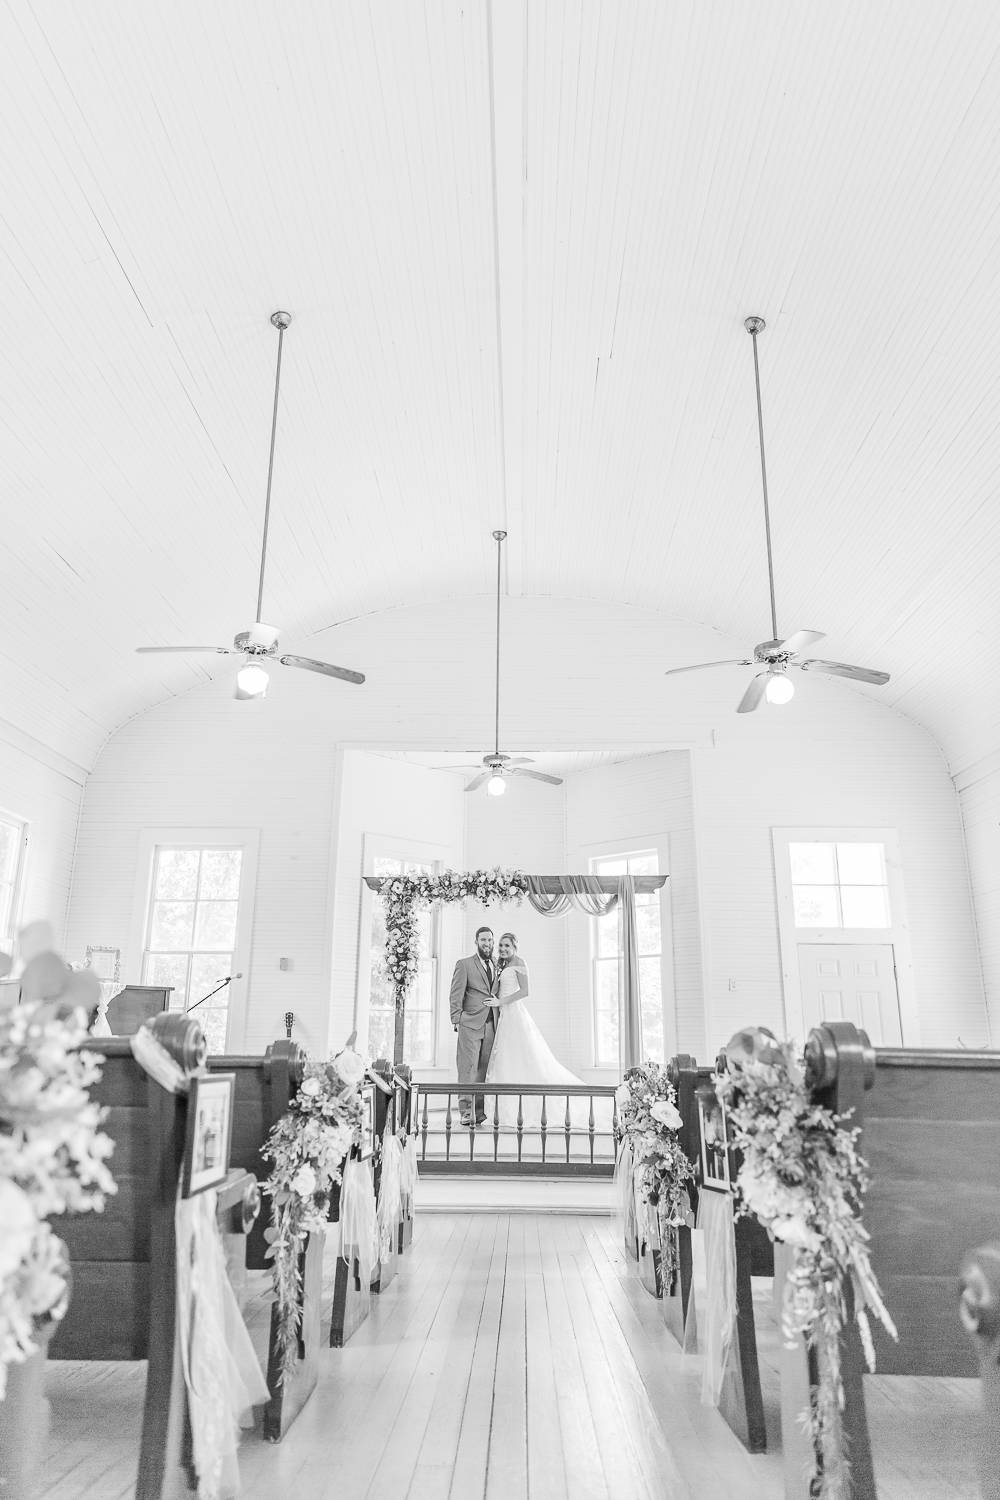 Annie Elise Photography | Ceremony | black and white bride and groom portraits | Inside white church | Slate Blue Wedding